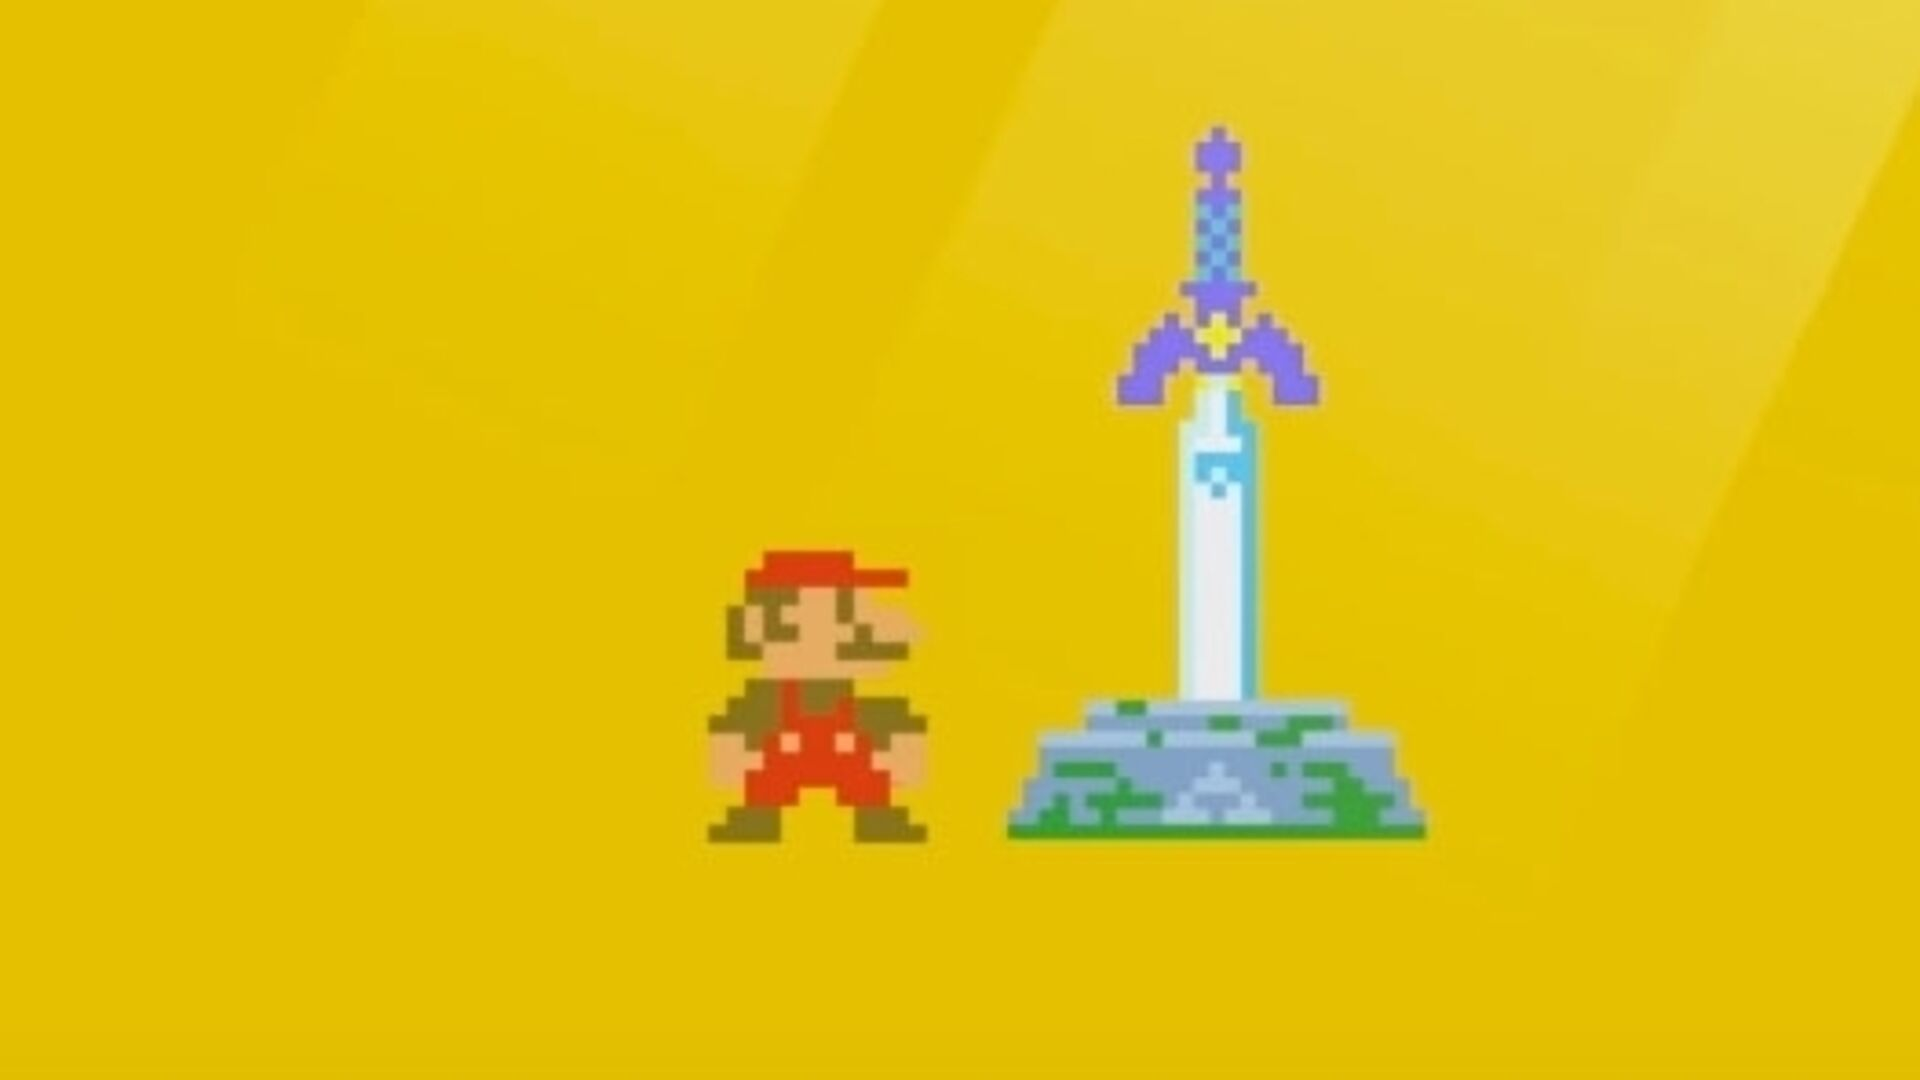 Super Mario Maker 2 S Zelda Update Lets You Wield The Master Sword Eurogamer Net